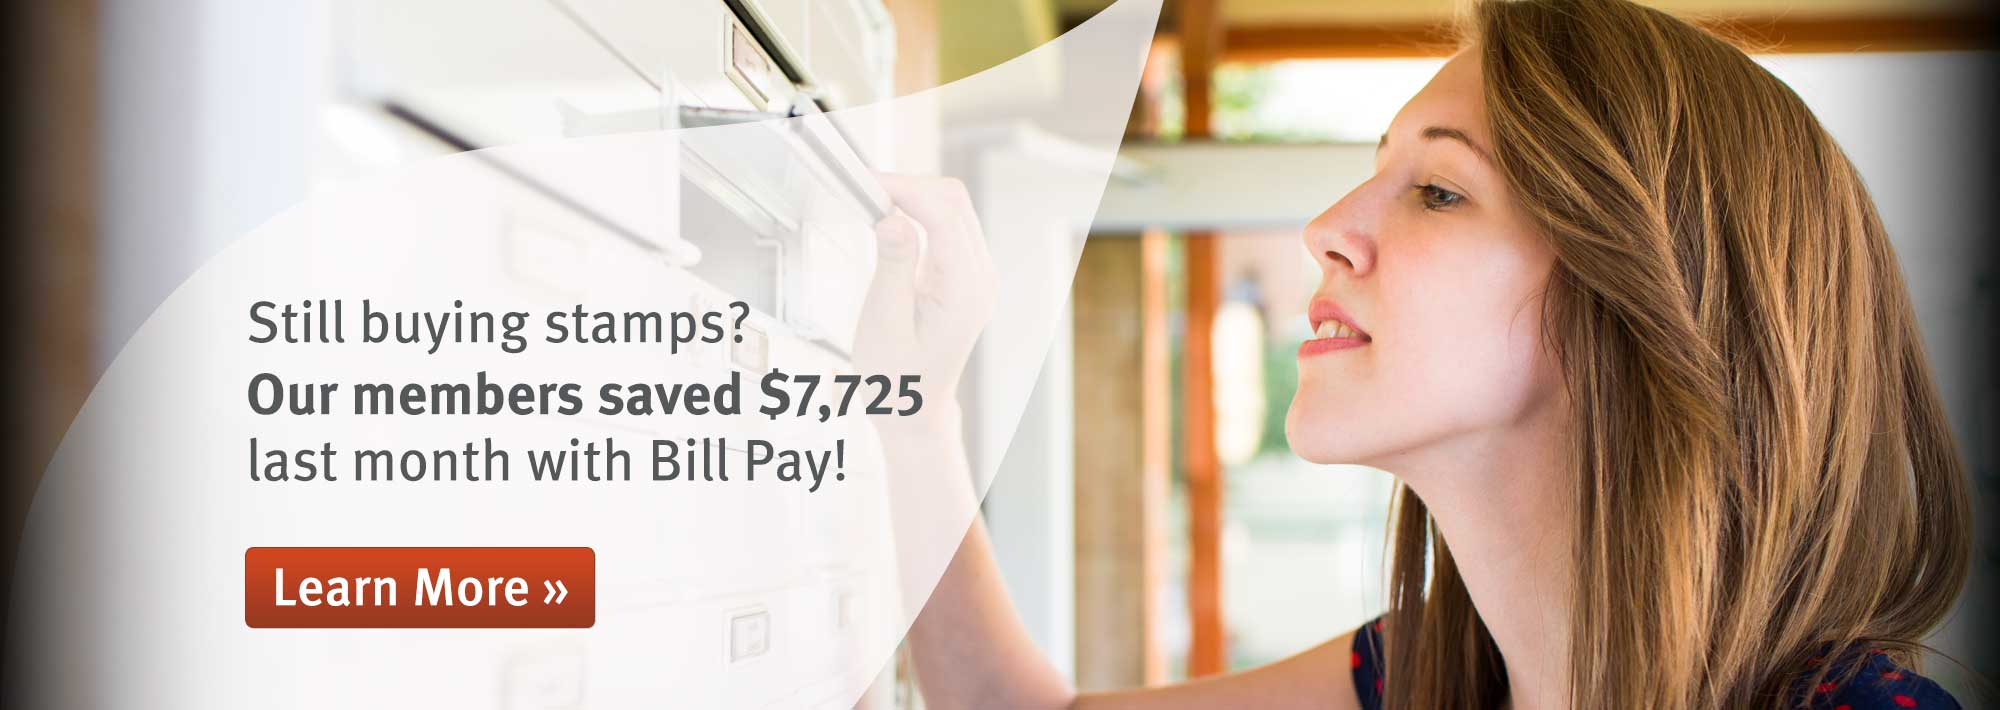 Still buying stamps? Our members saved $7,725 last month with Bill Pay! Learn More.